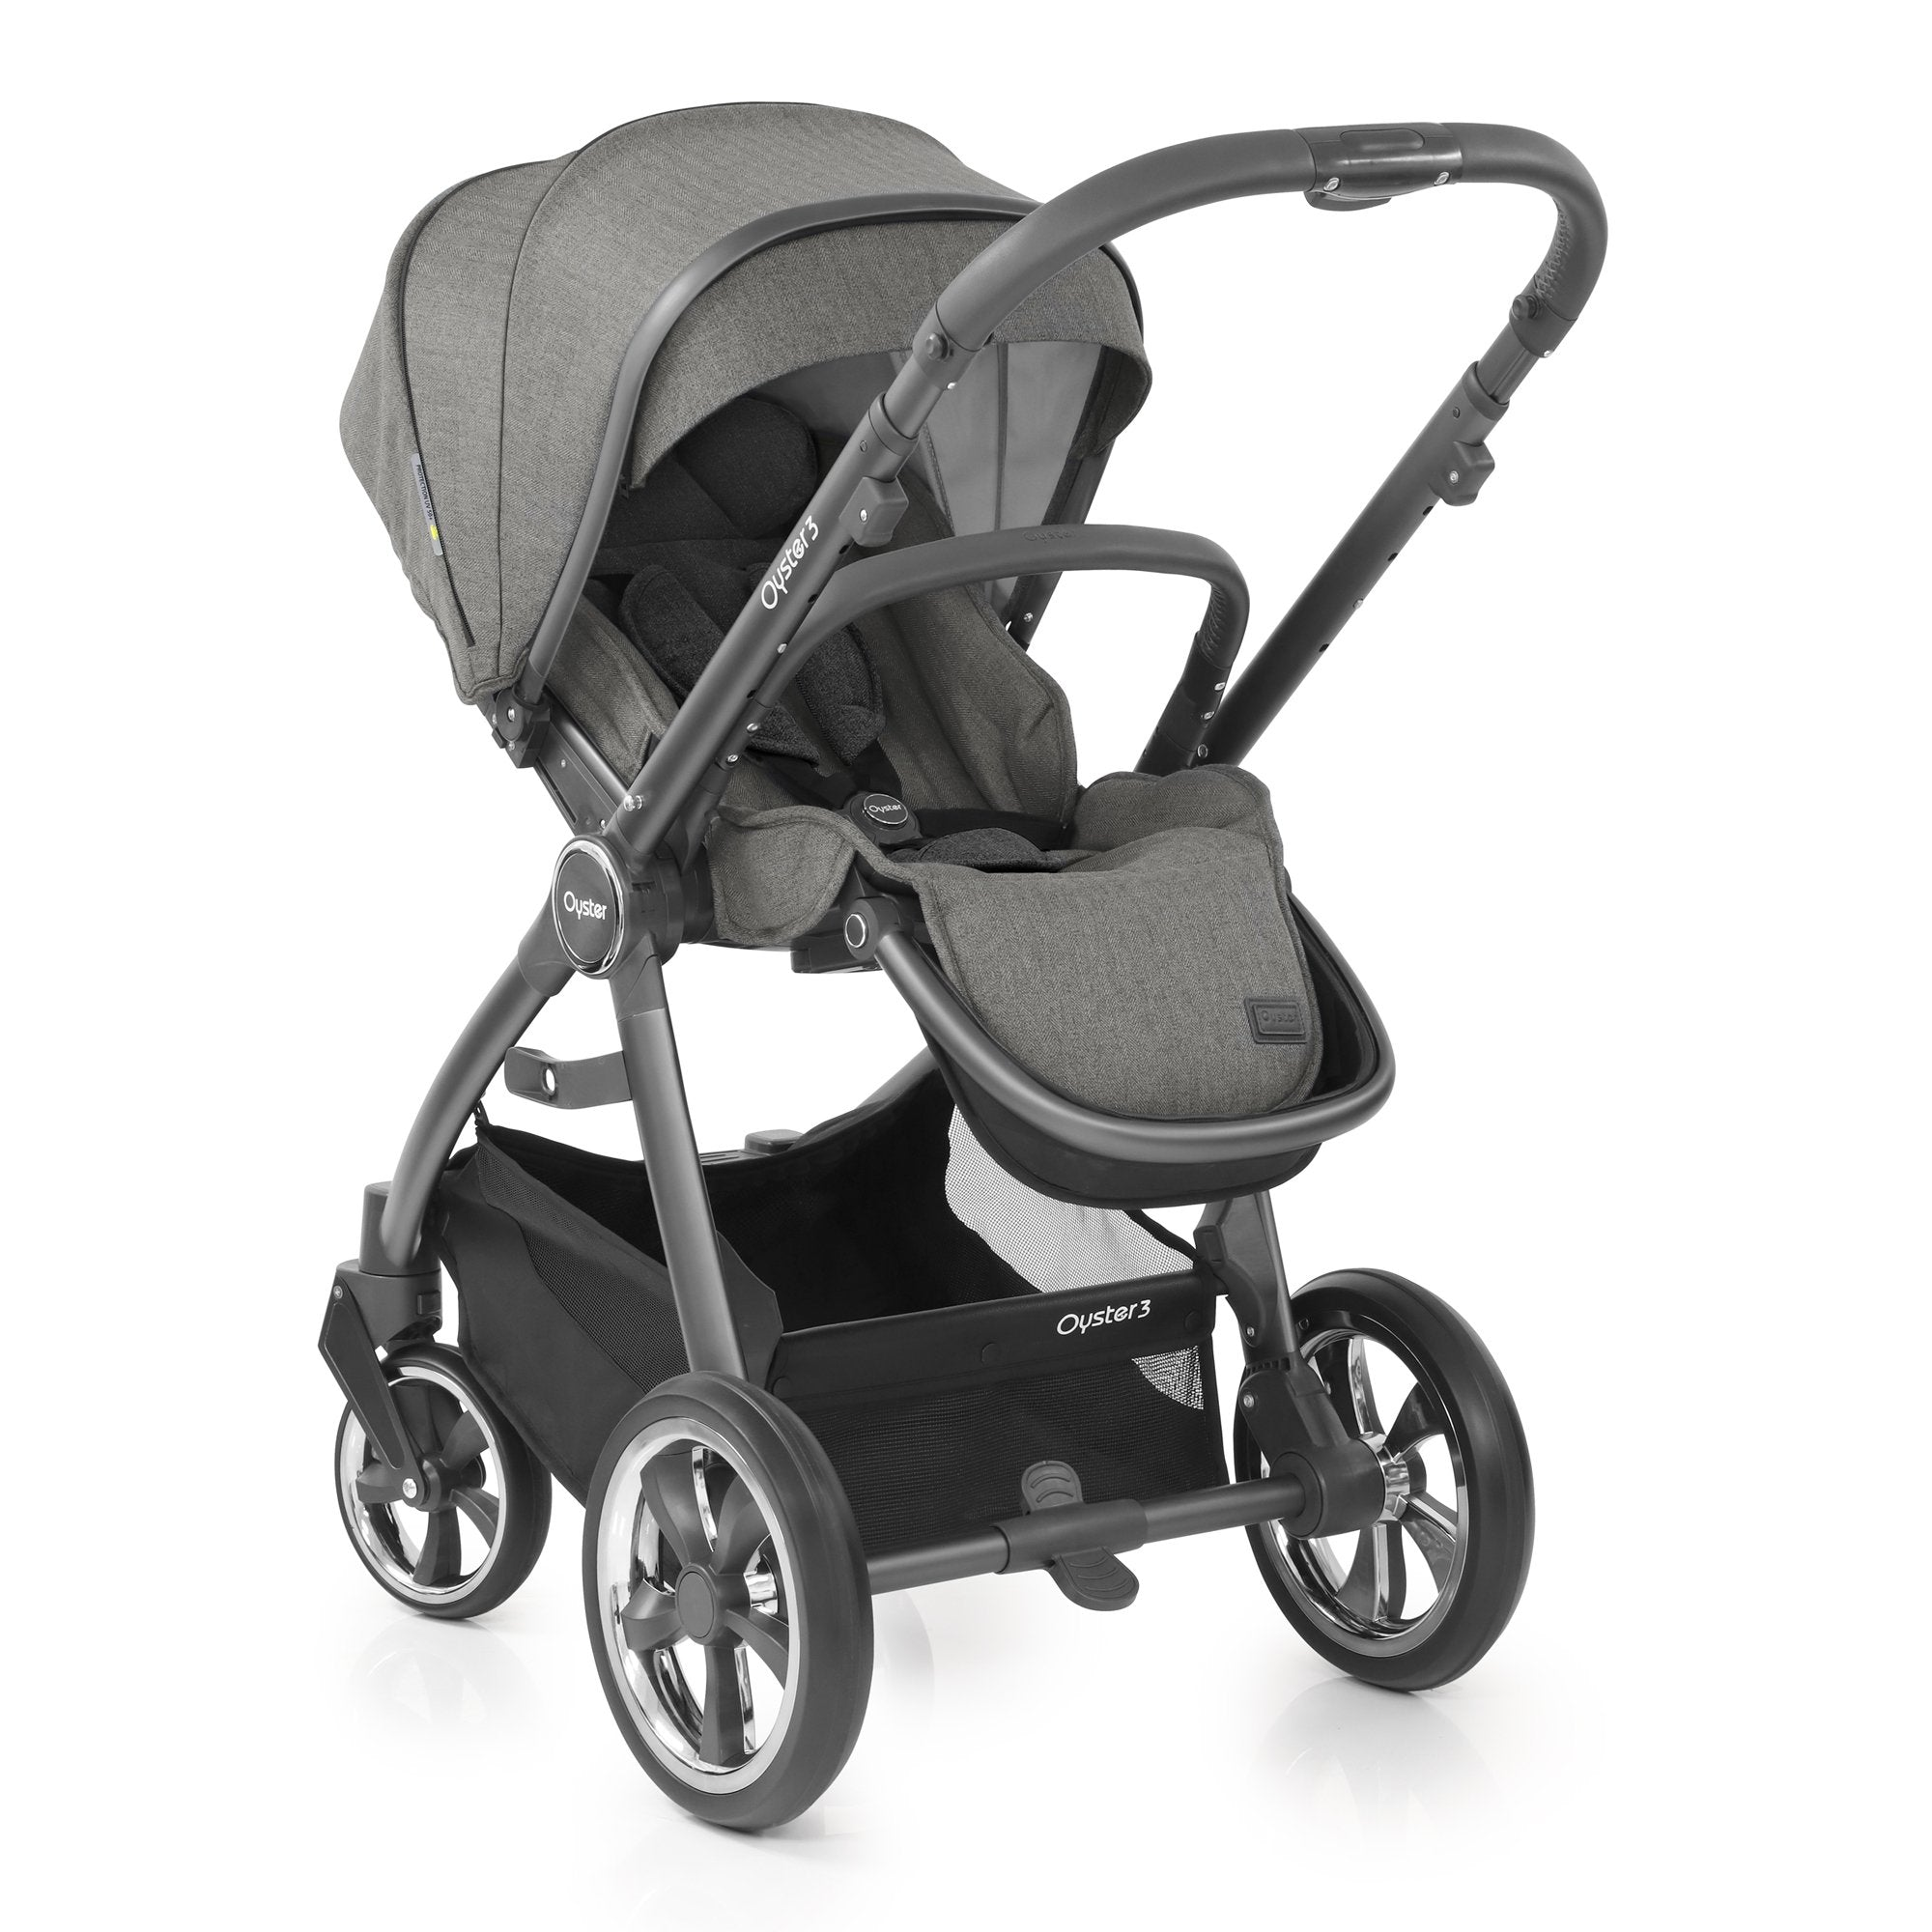 BabyStyle Oyster 3 Mercury (City Grey Chassis) Ultimate Bundle with Maxi-Cosi Cabriofix - Pushchair Expert